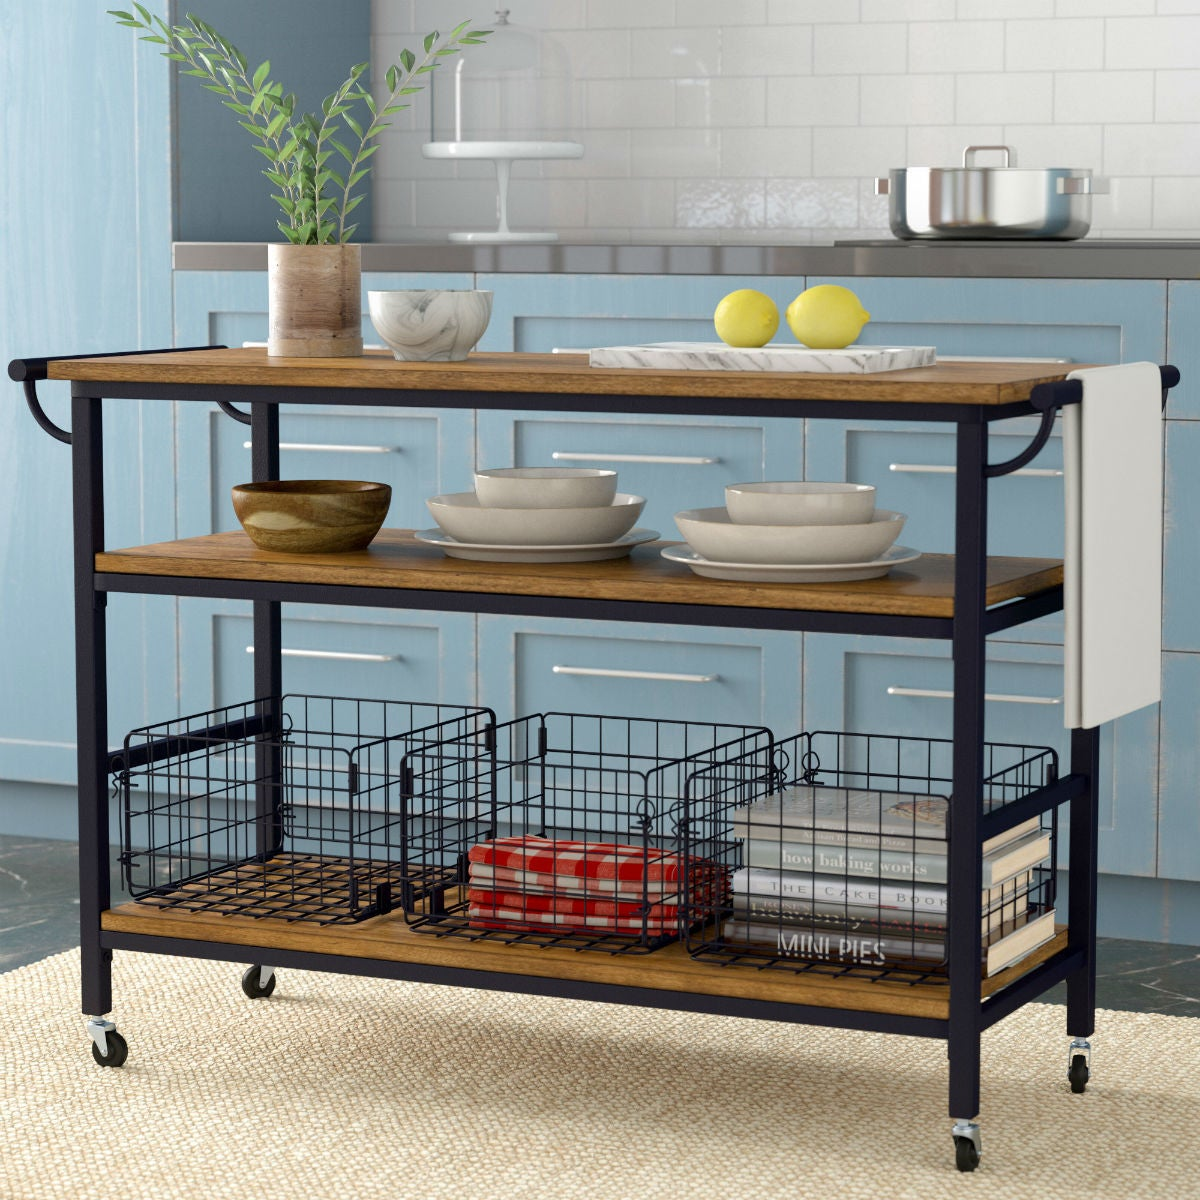 The Best Kitchen Island Size for Wheeled Options